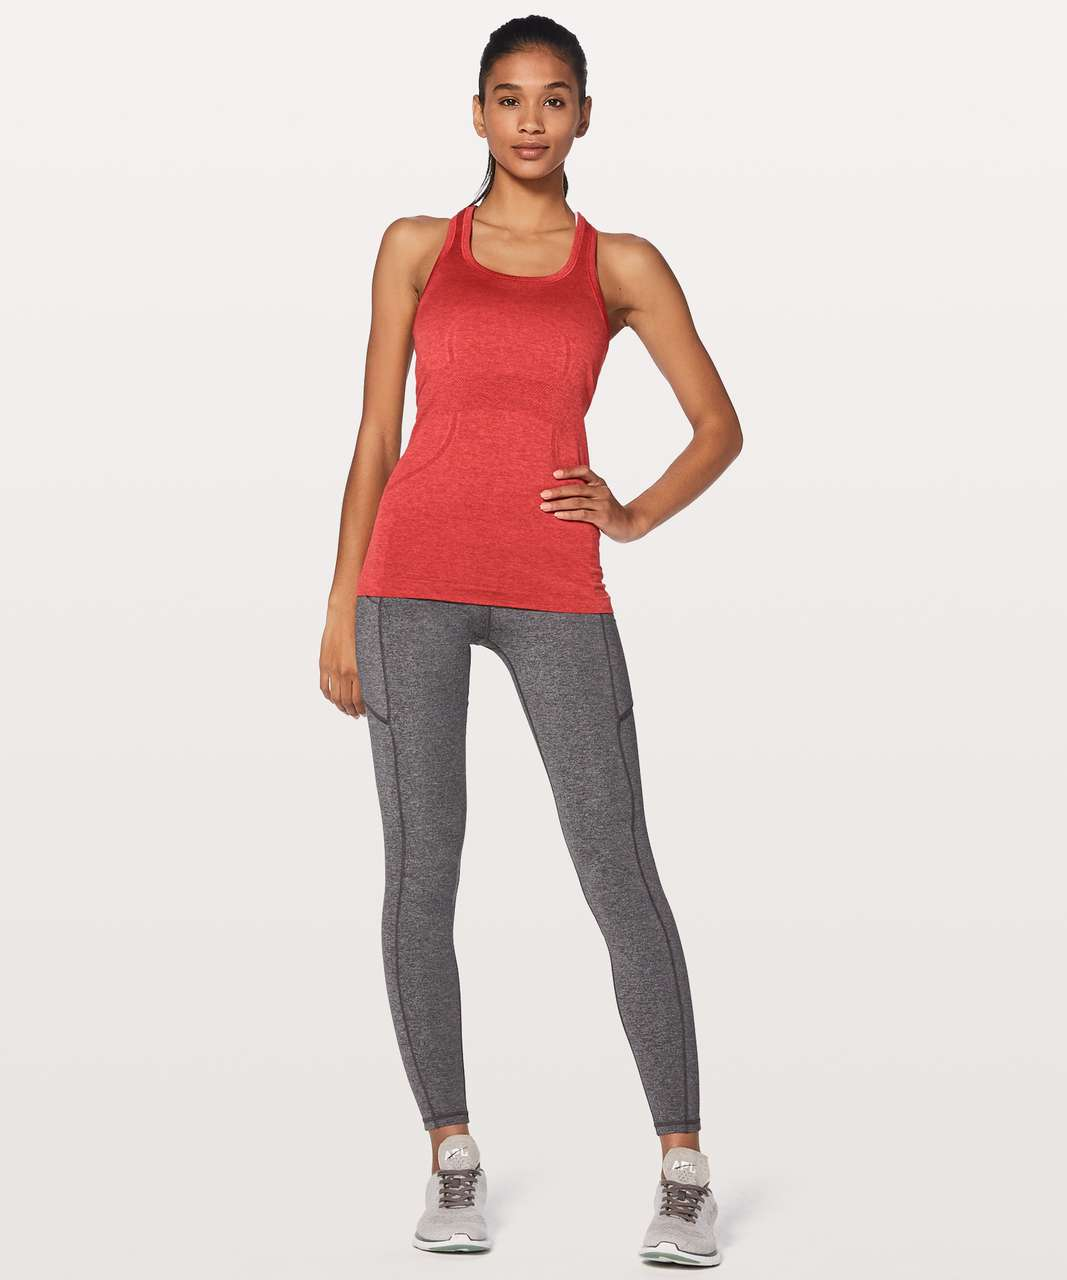 Lululemon Swiftly Tech Racerback - Persian Red / Vermillion